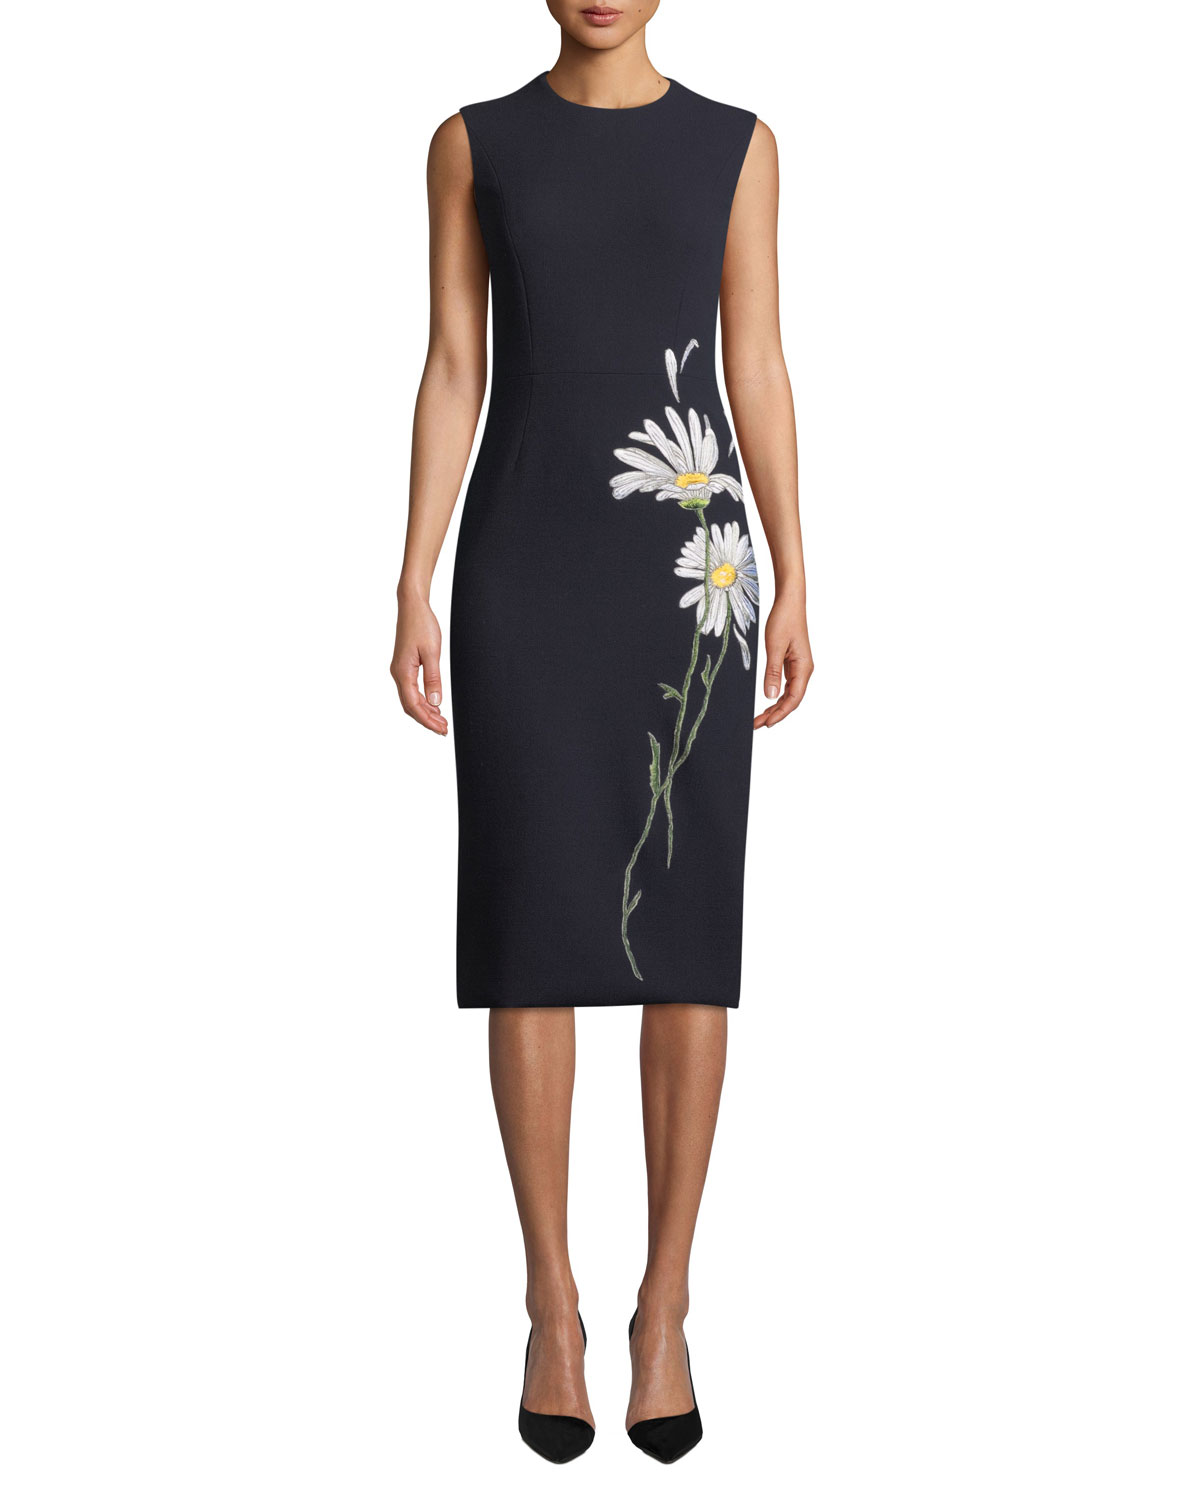 ATELIER CAITO FOR HERVE PIERRE Sleeveless Daisy-Embroidered Midi Dress in Navy